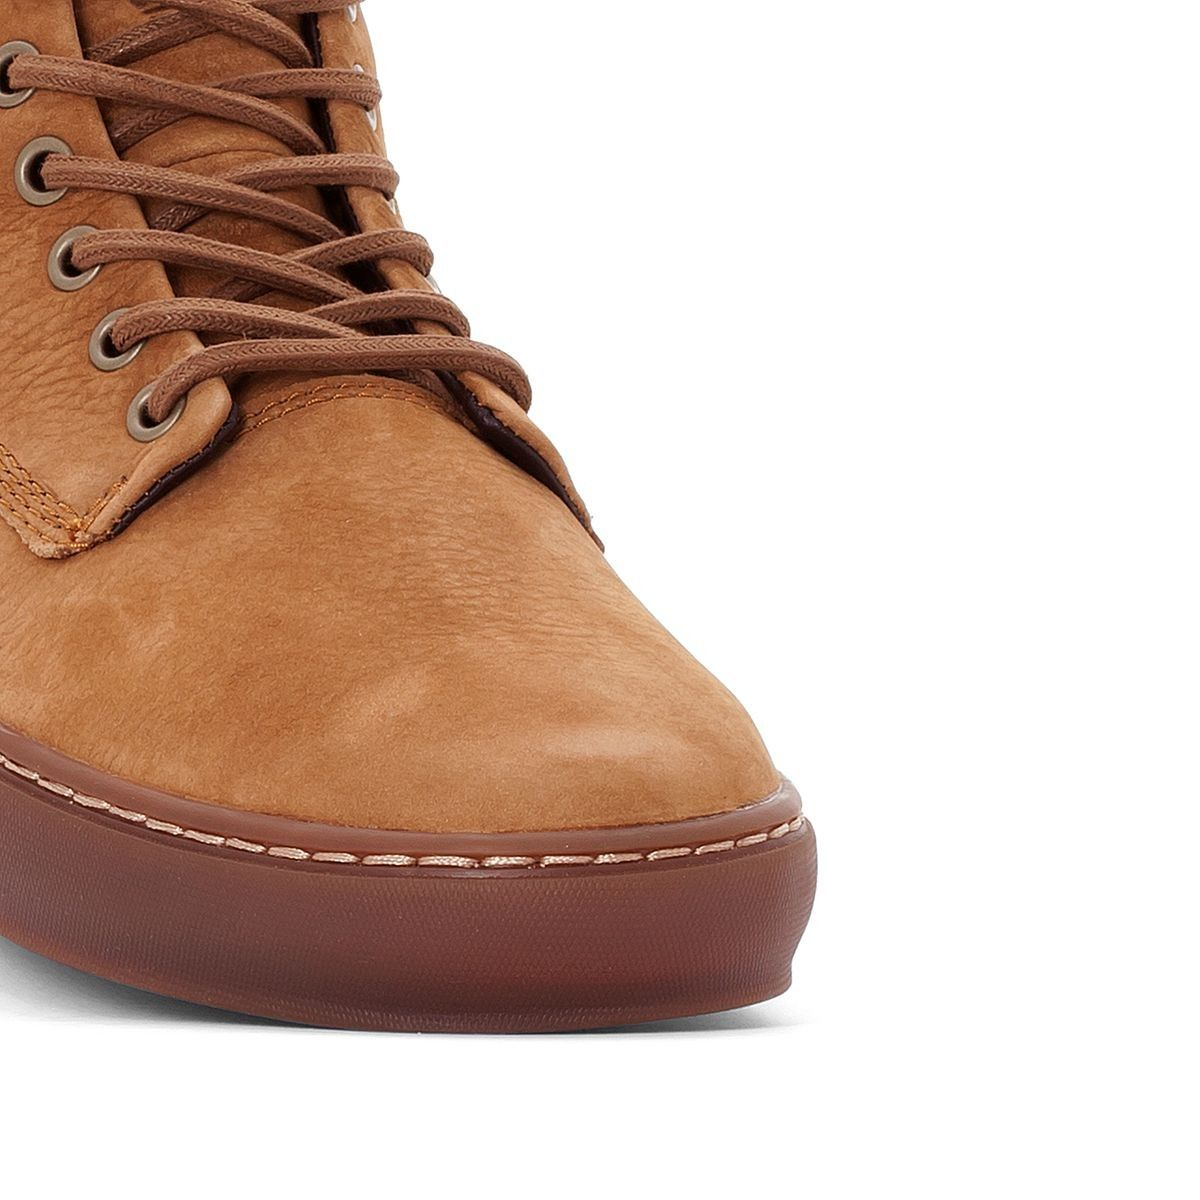 Boots Cuir Adventure 2.0 Cupsole Ca1ye Taille : 41;45